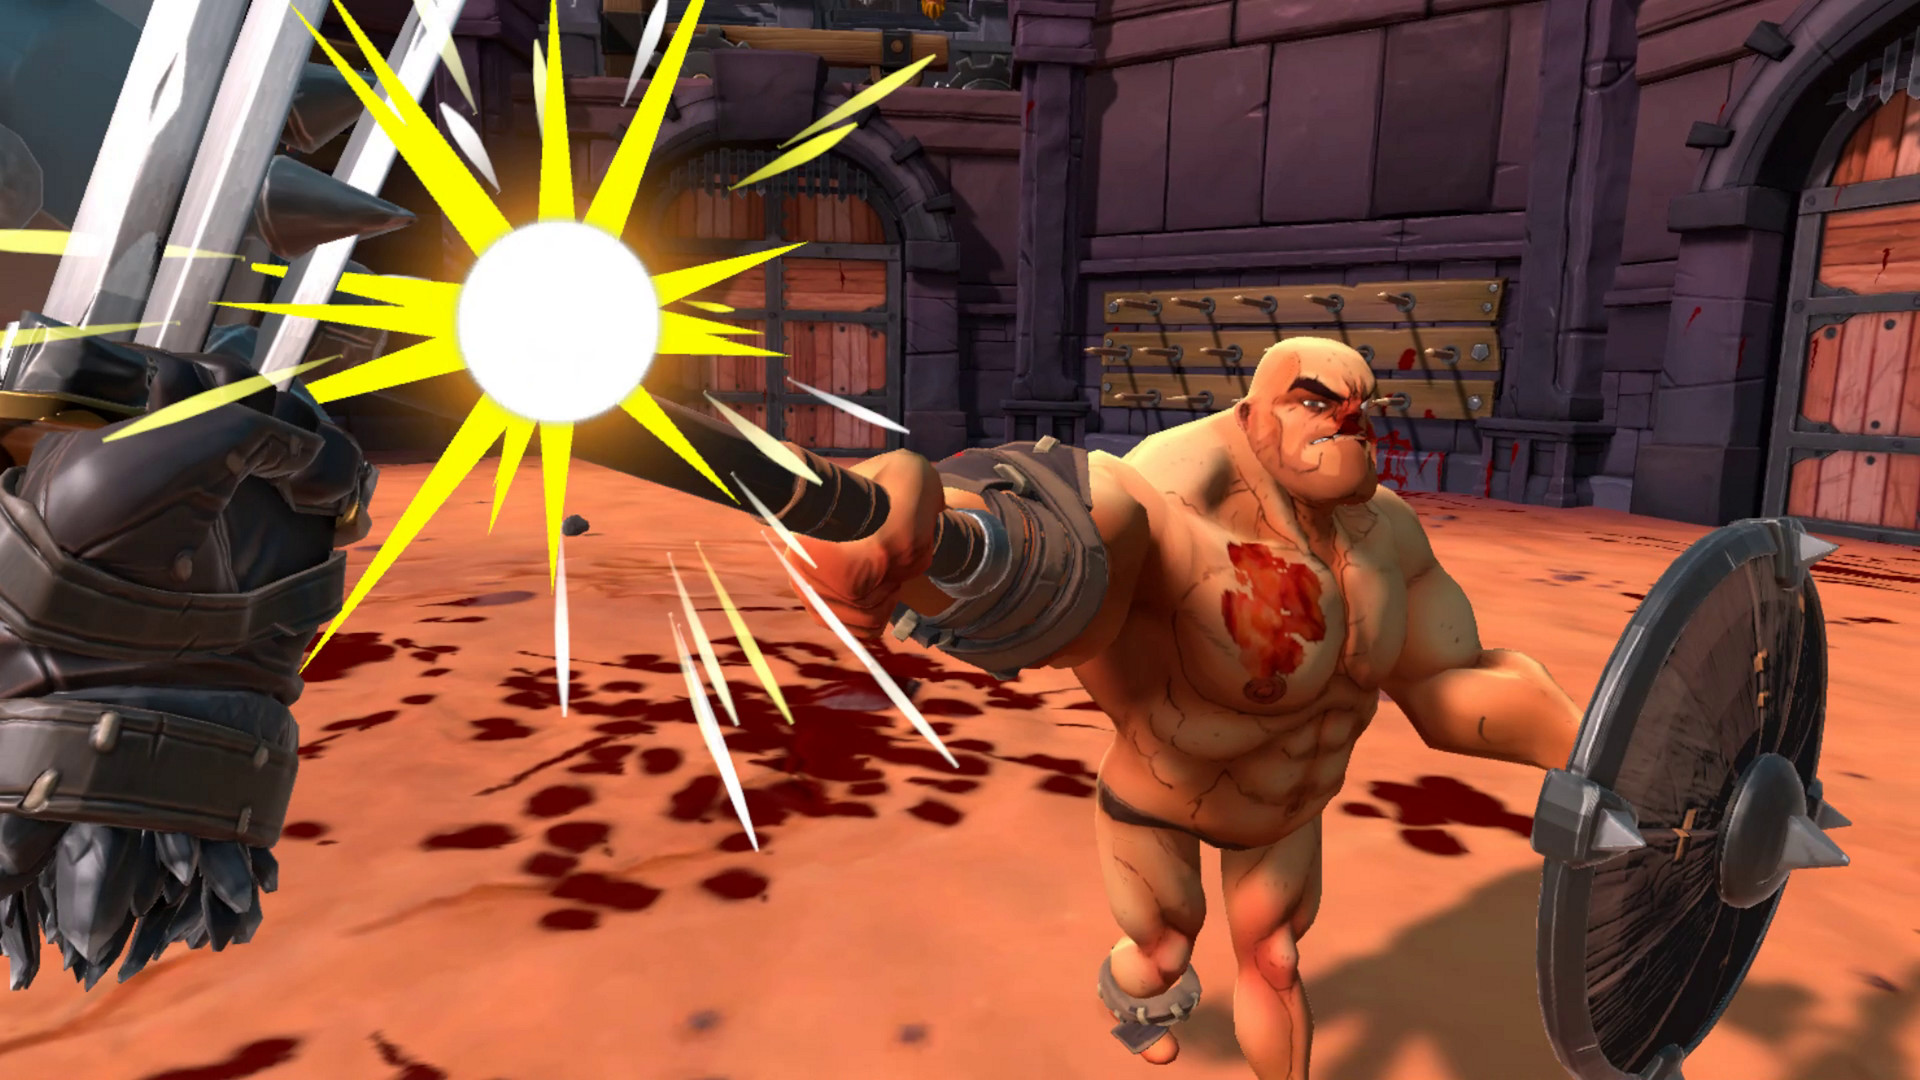 Hyperviolent Gladiator Sim GORN to Leave Early Access Soon